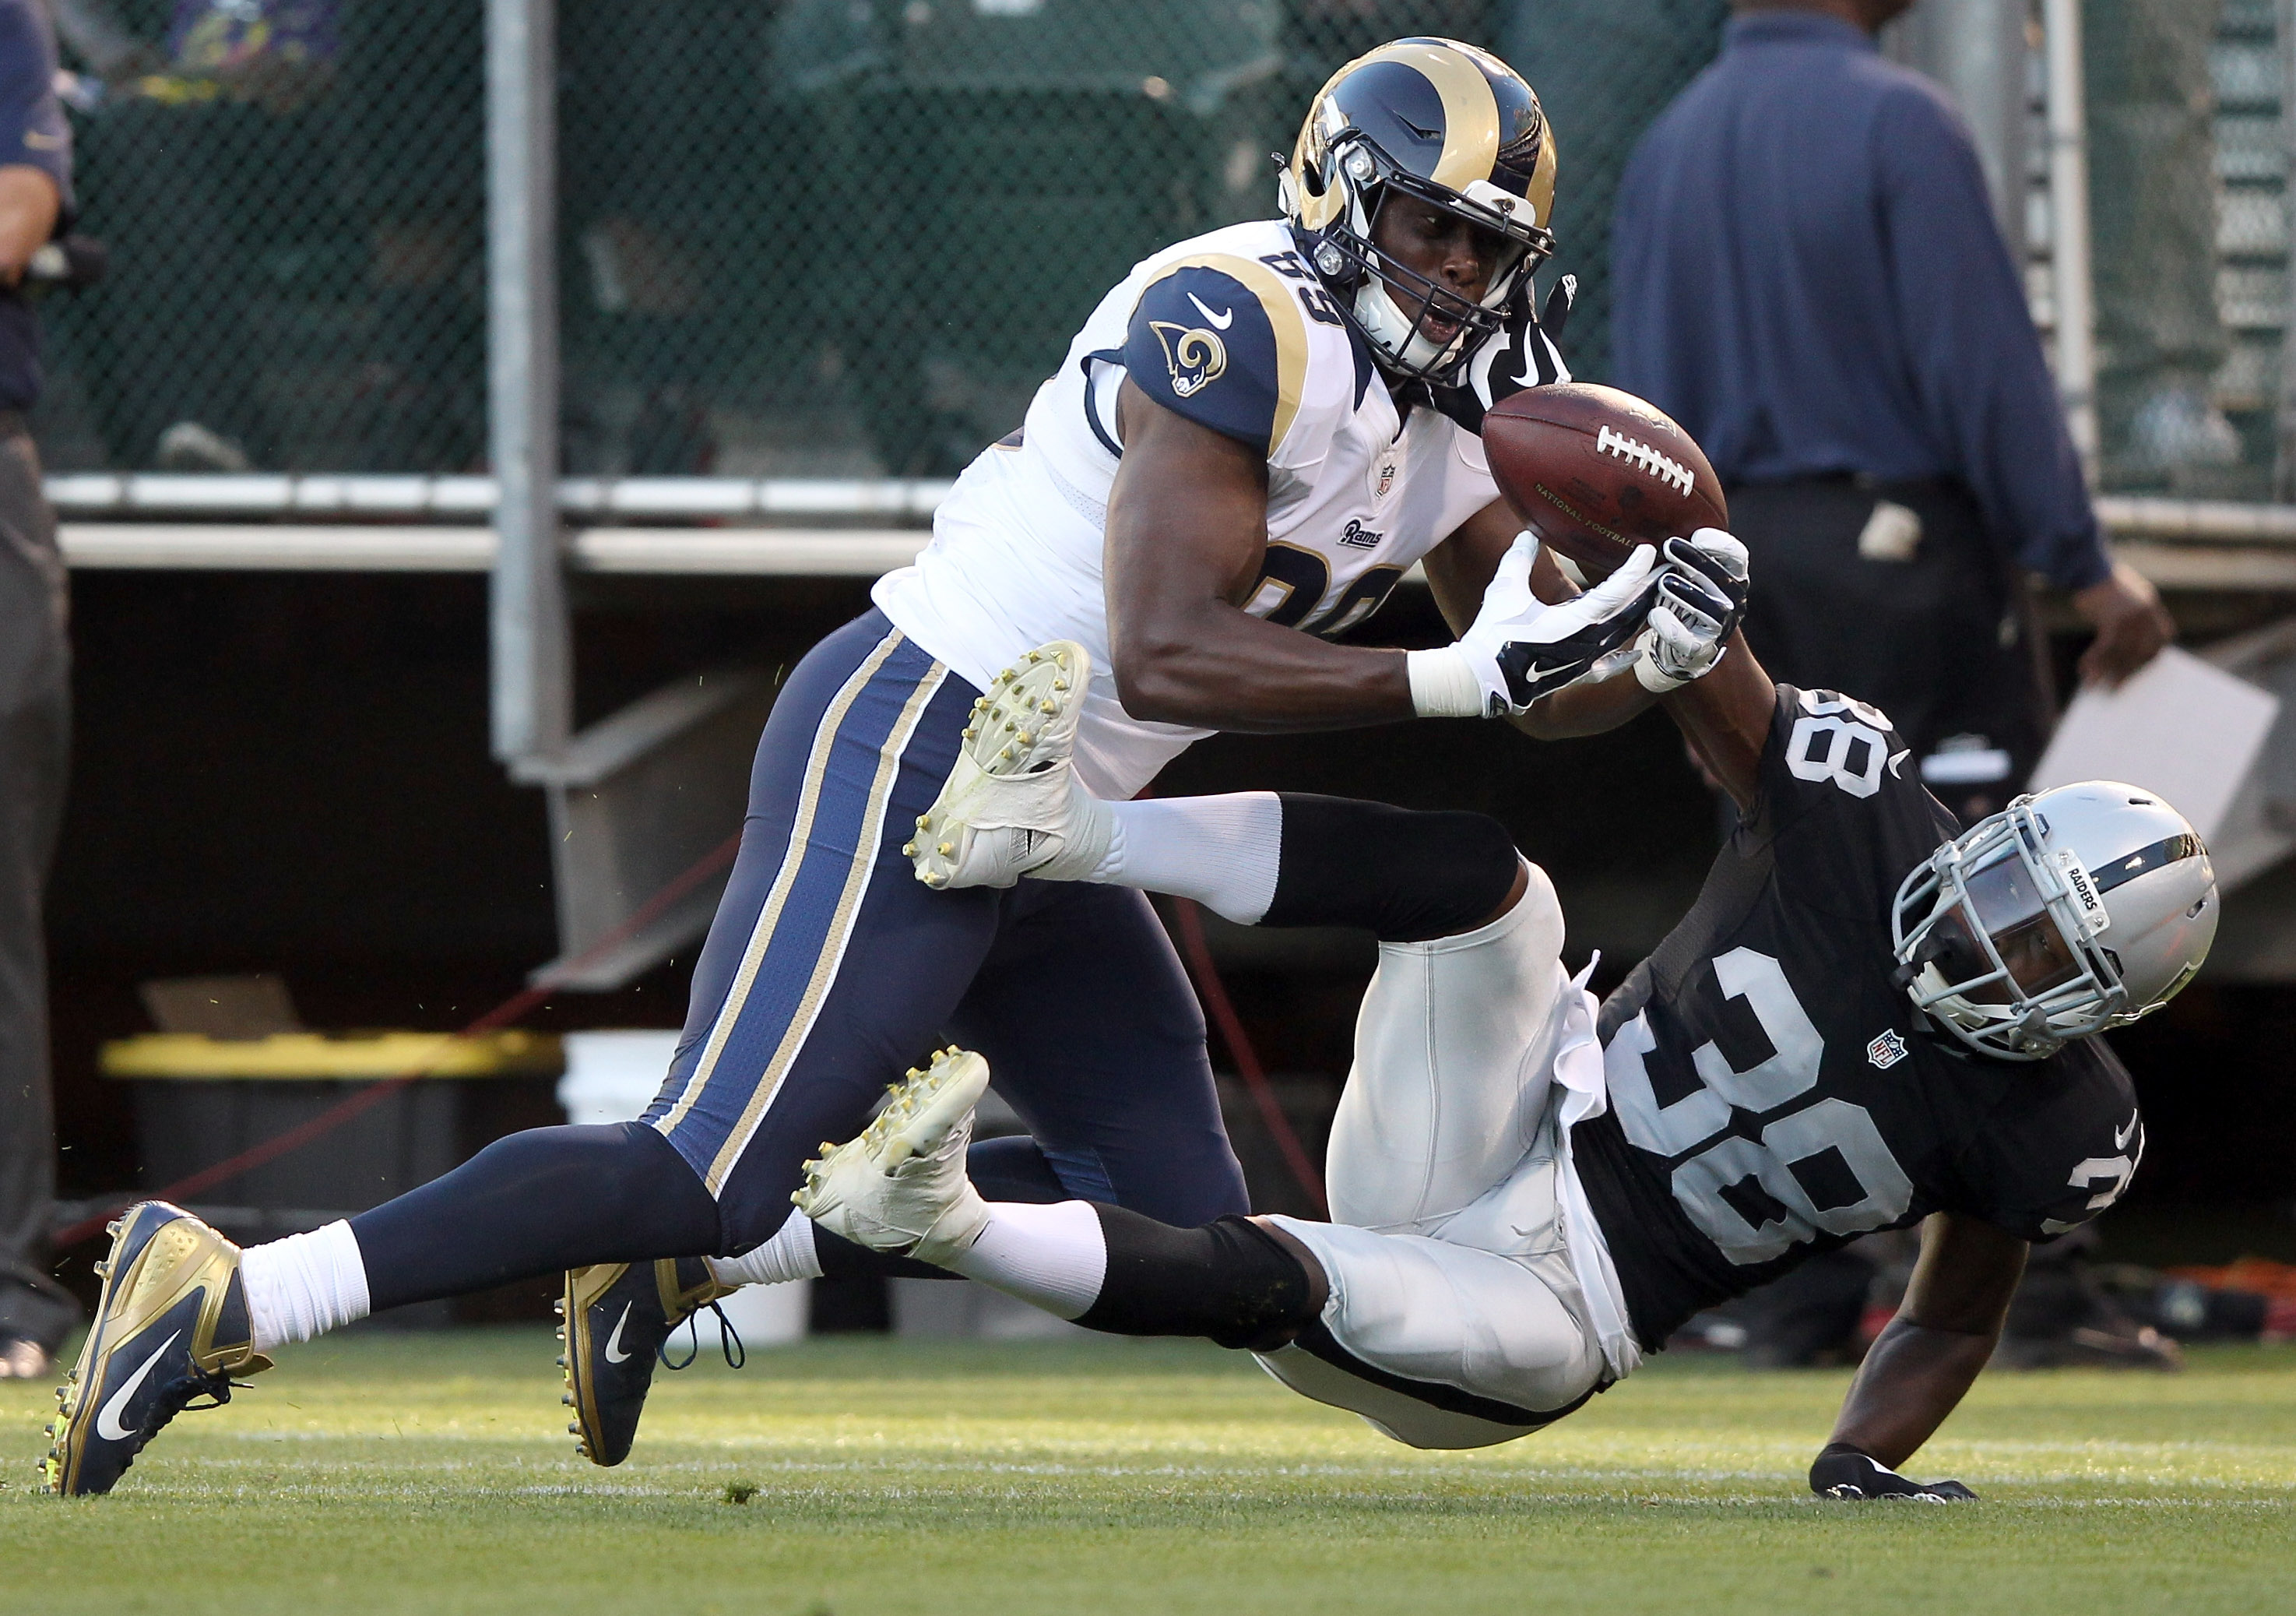 Fantasy Football Sleepers 9 Undervalued Tight Ends To Draft